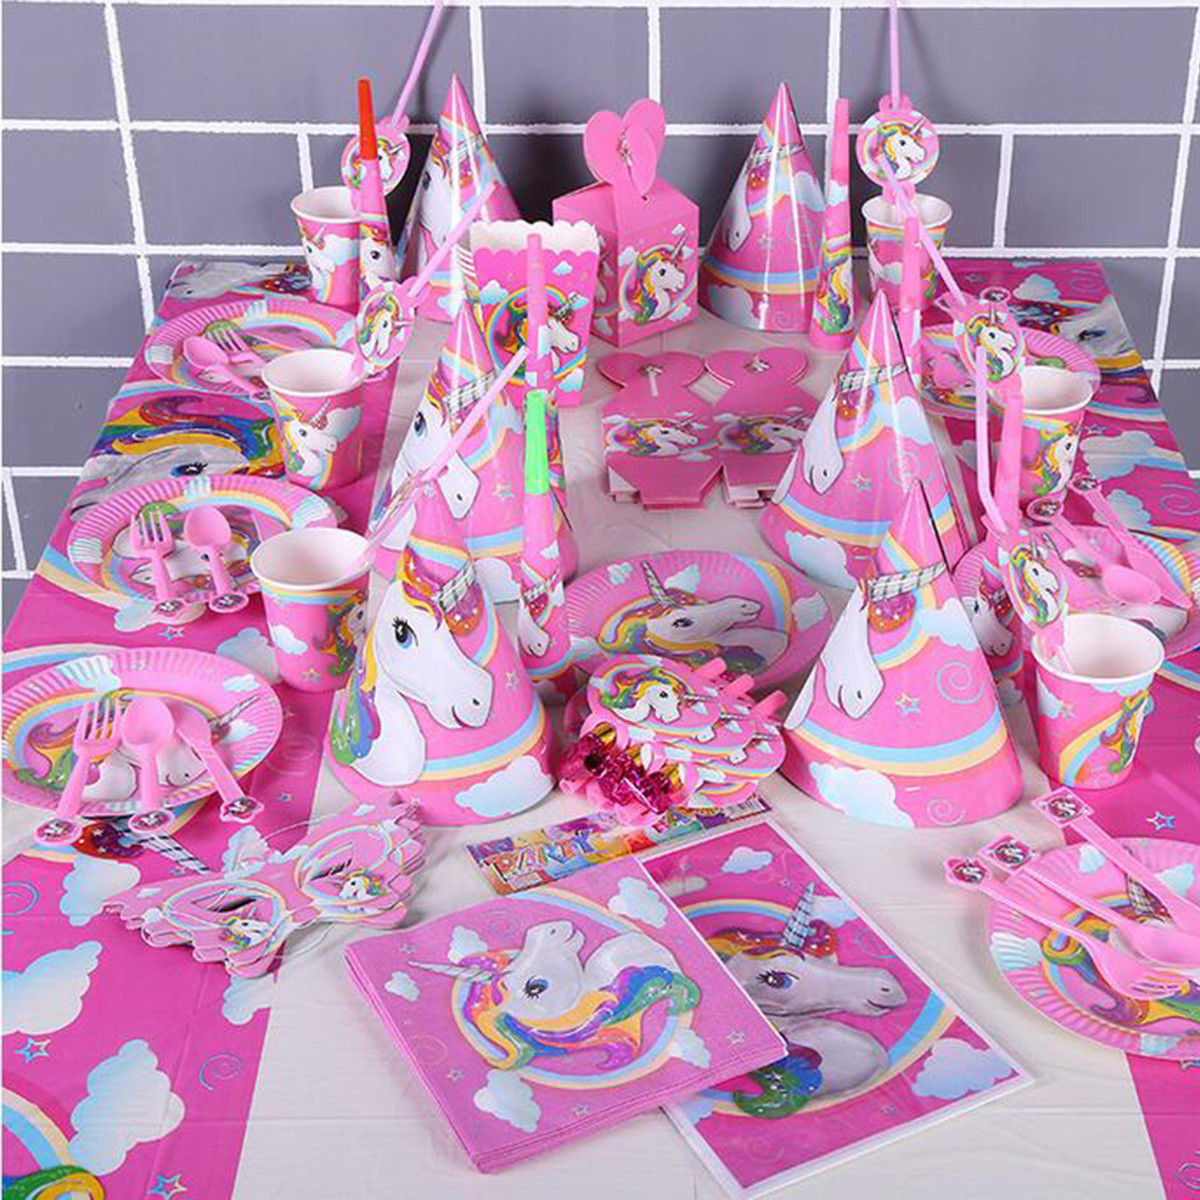 Best ideas about Unicorn Birthday Decorations . Save or Pin Baby Kids Unicorn Theme Birthday Party Decor Supplies Now.